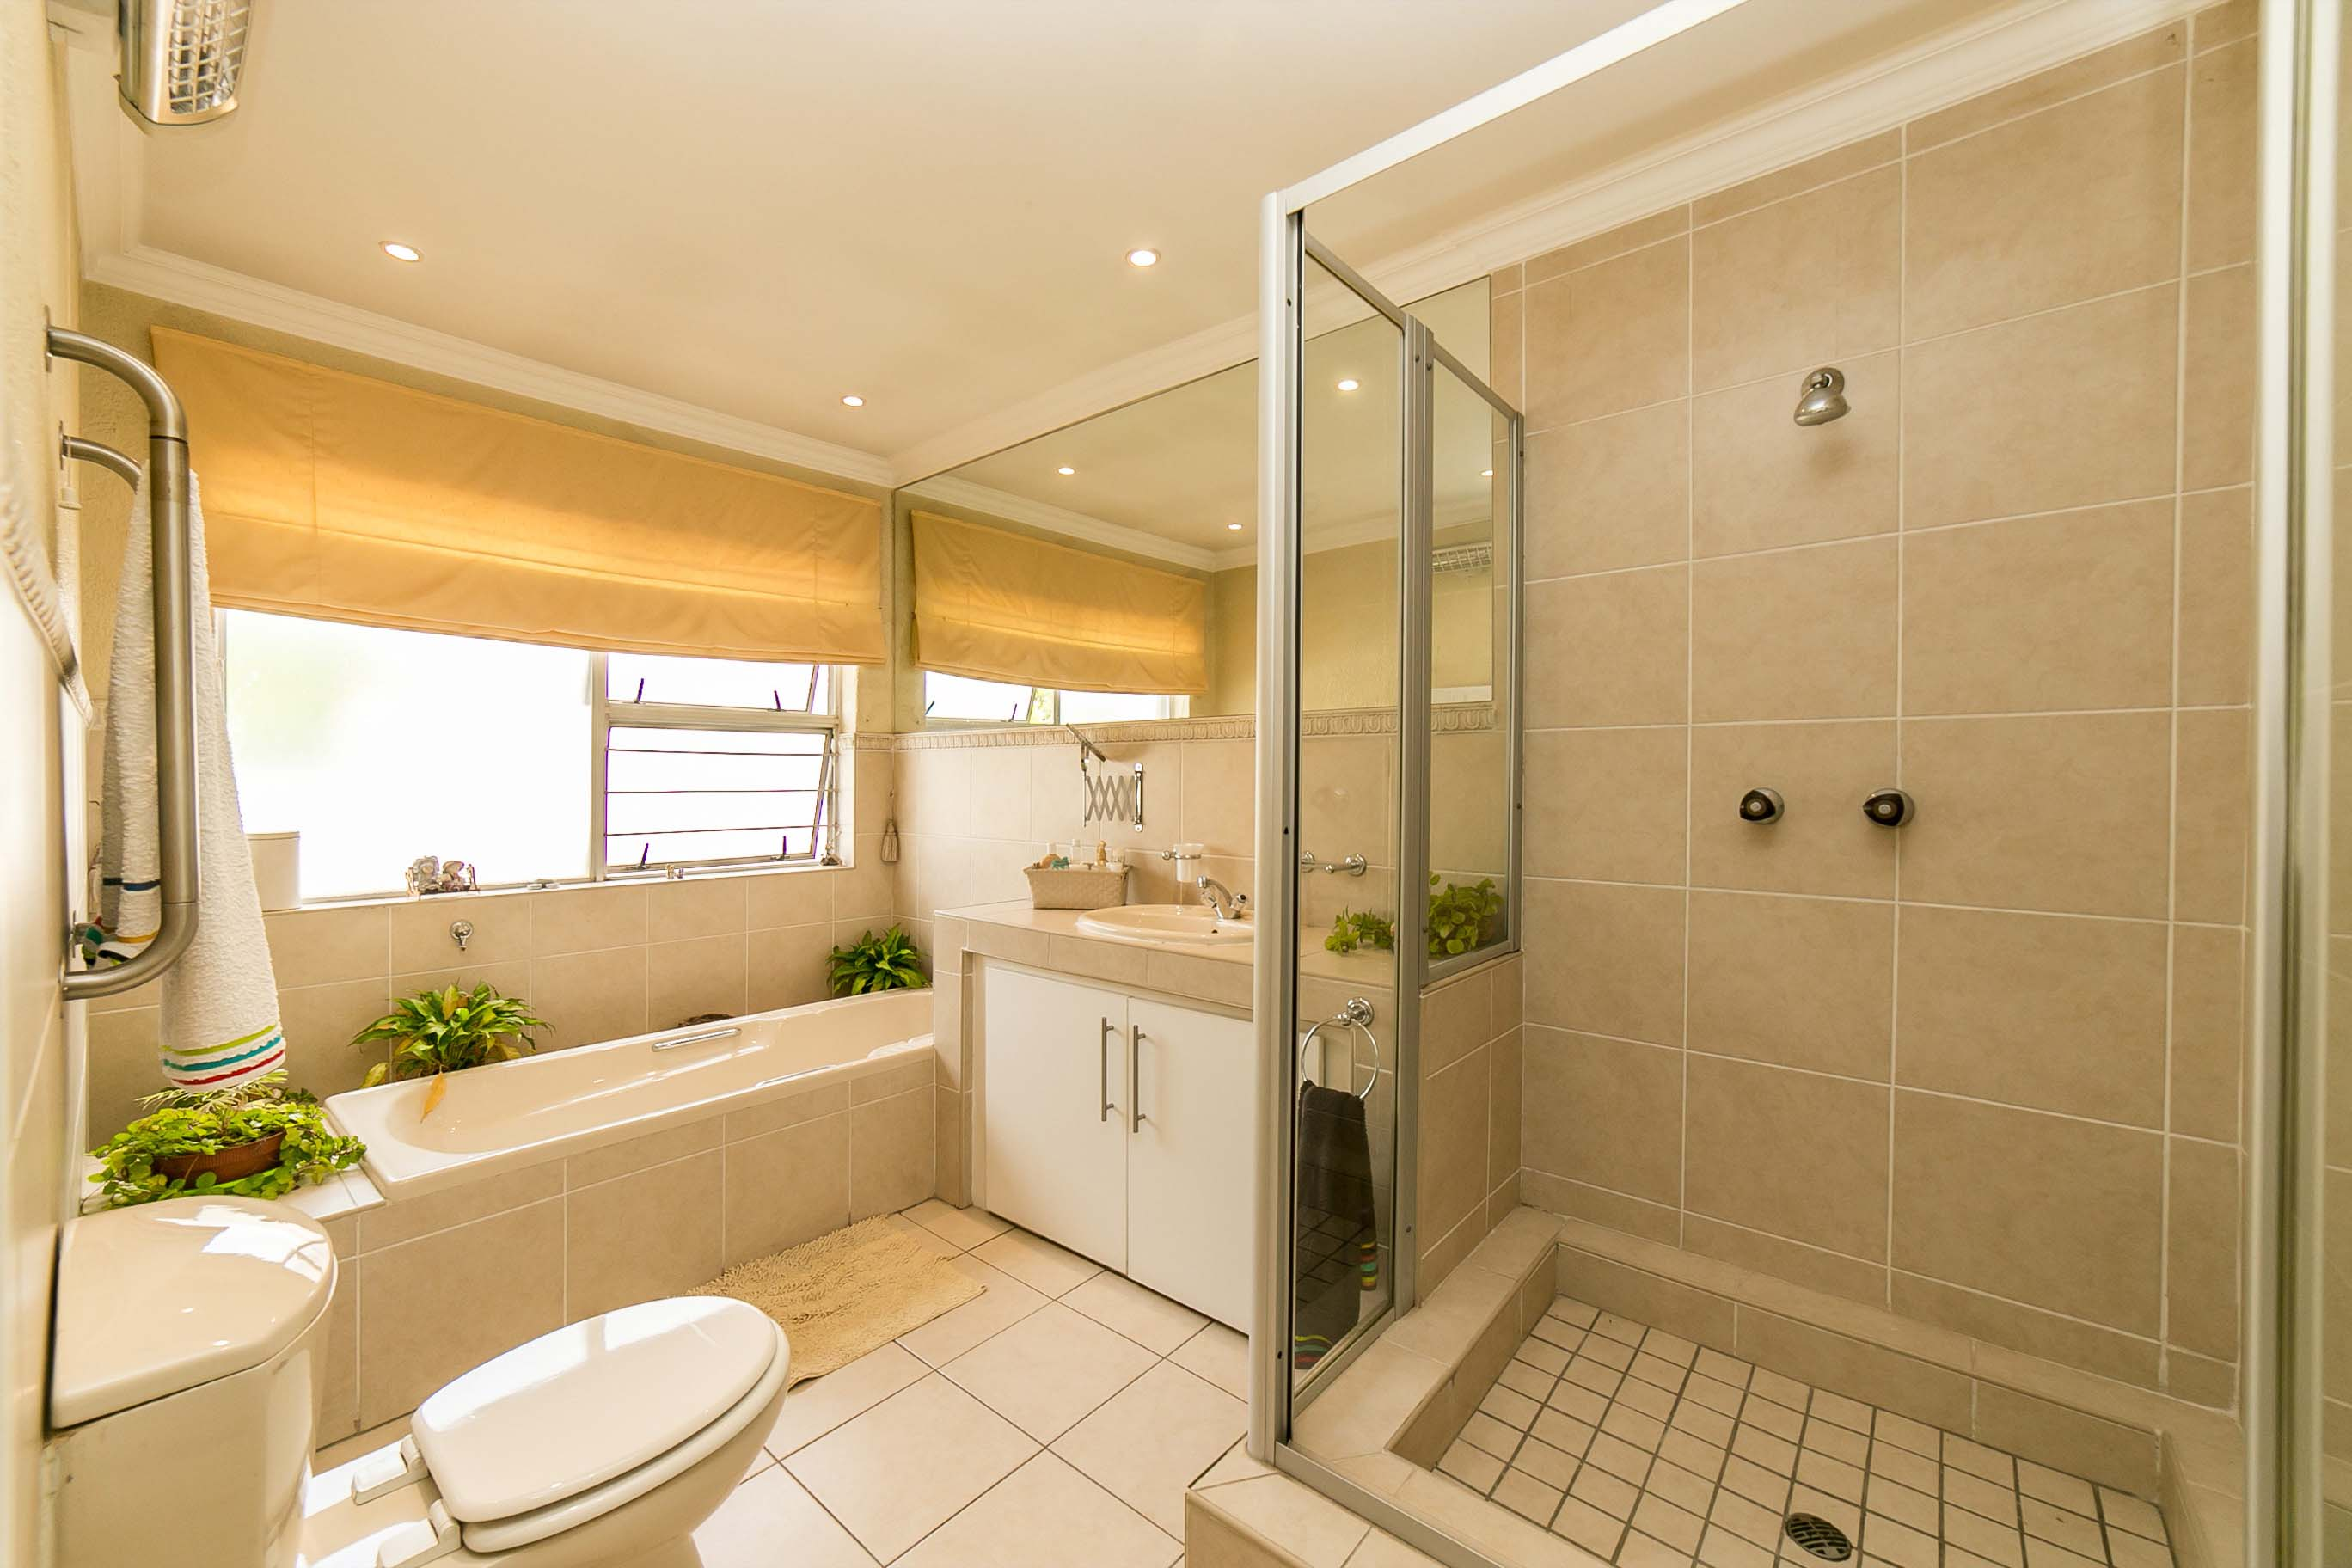 4 Bedroom House for sale in Lonehill ENT0082001 : photo#23